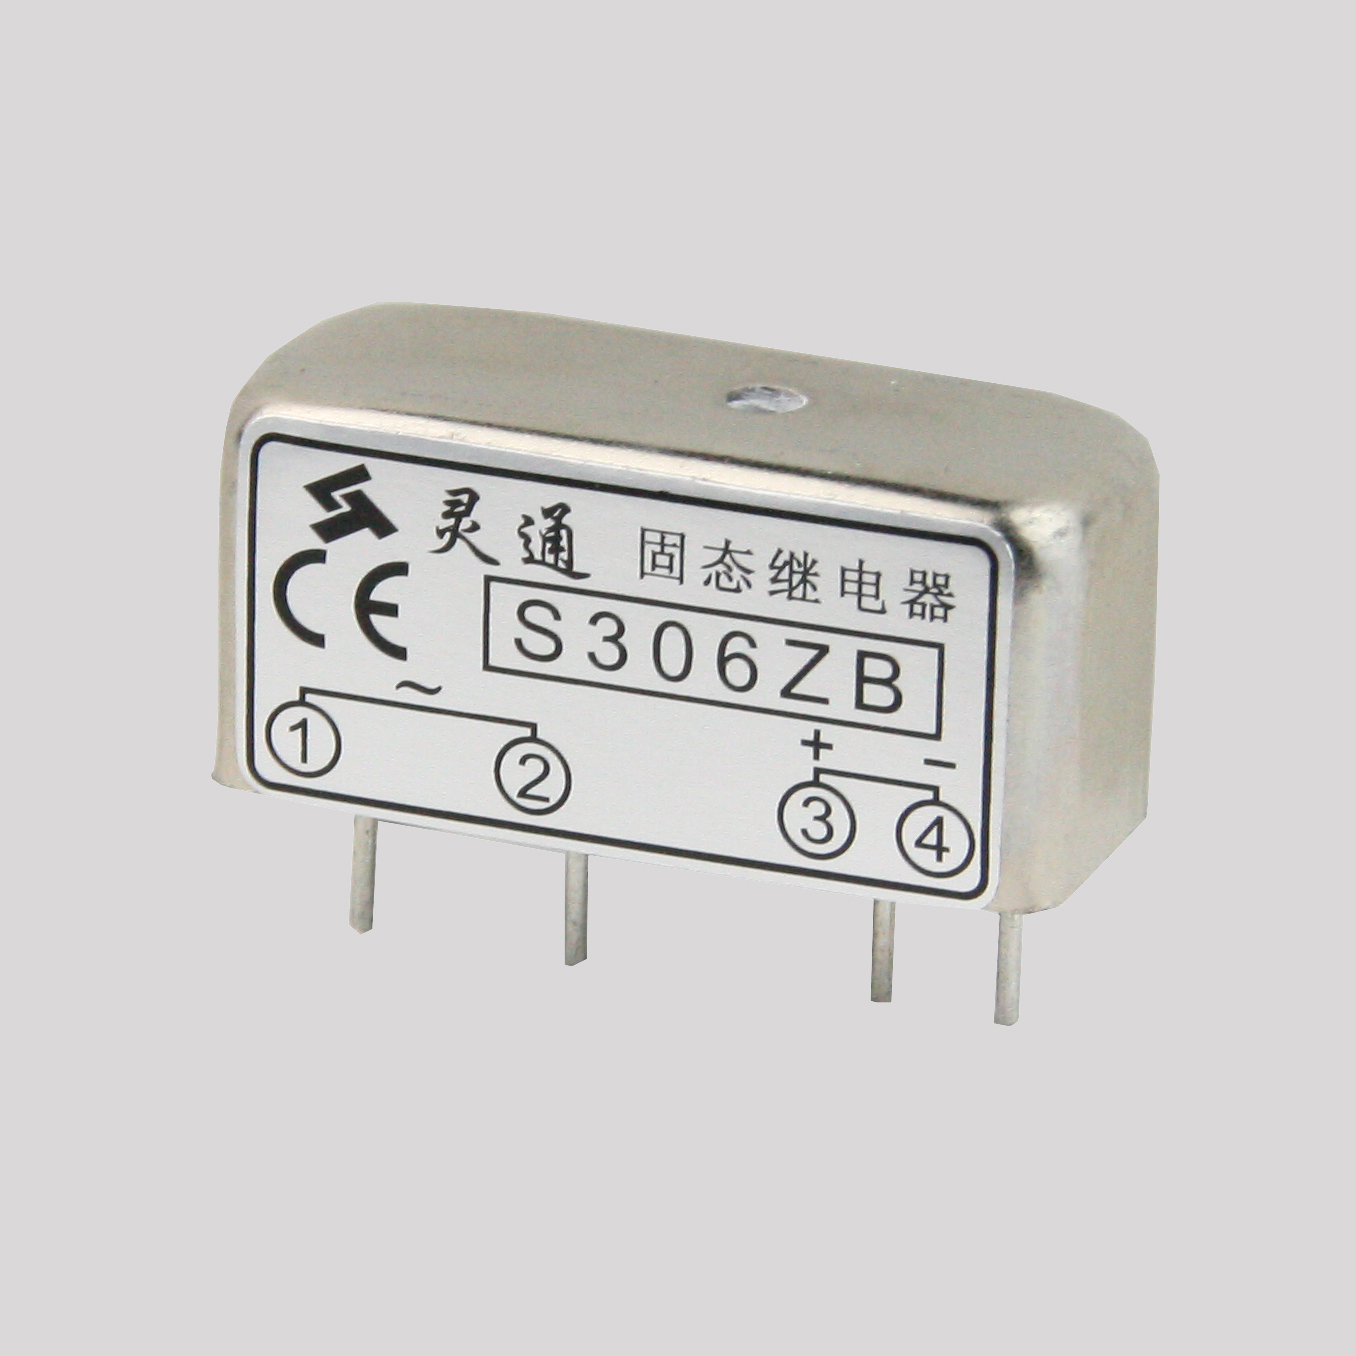 Lingtong Lt Solid State Relay S206zb S306zb 6a Factory Direct Sales Canada One Year Replacement Import Quality